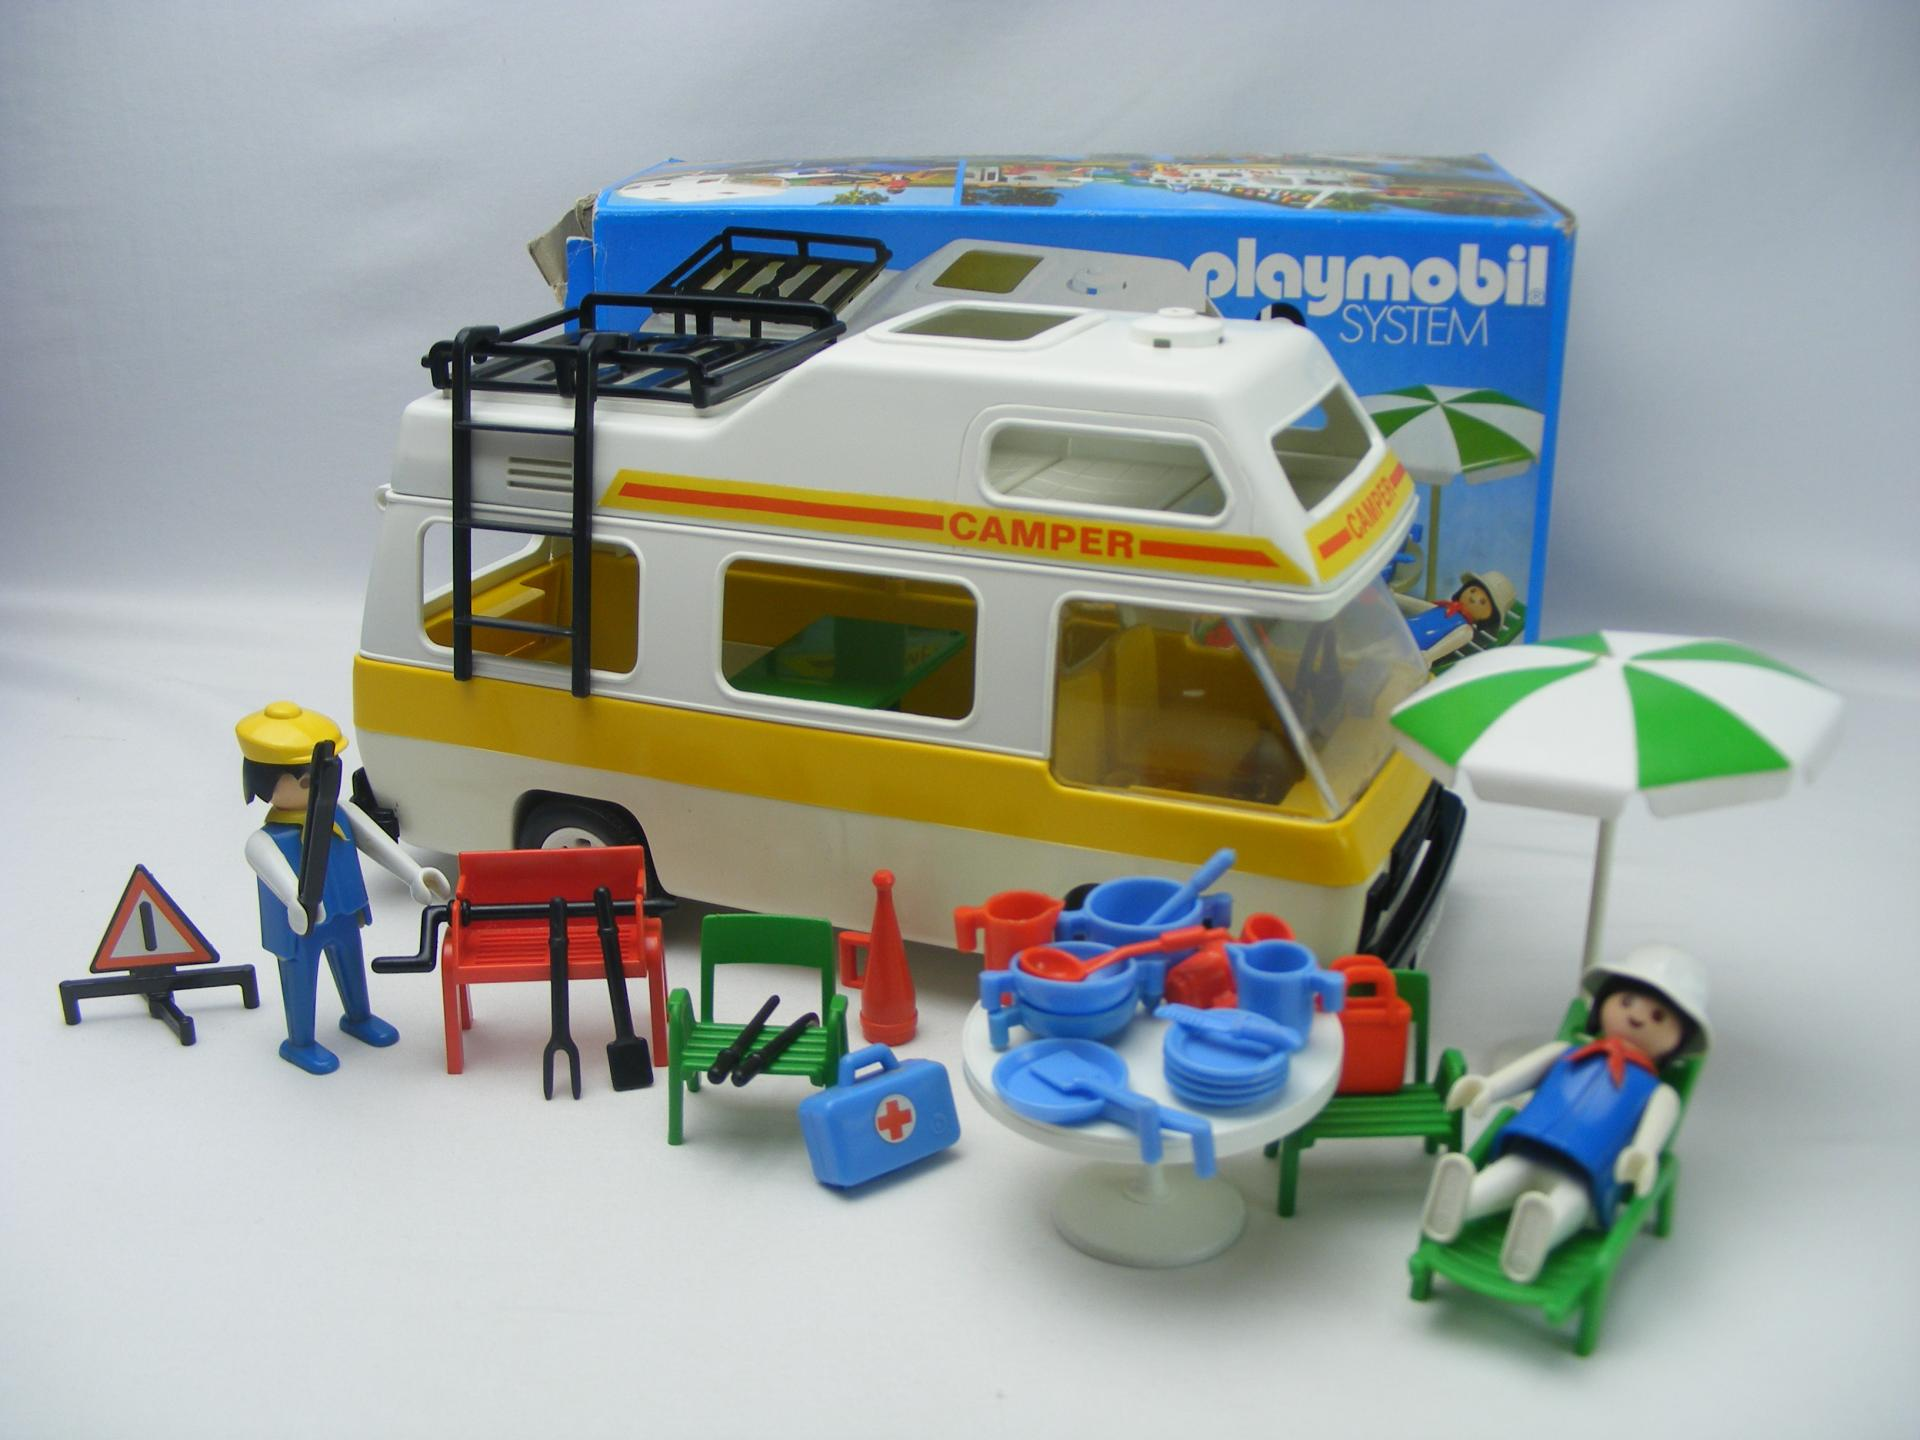 PLAYMOBIL 3258 CARAVANA (AÑO 1979 - 1988, VERSION 1)